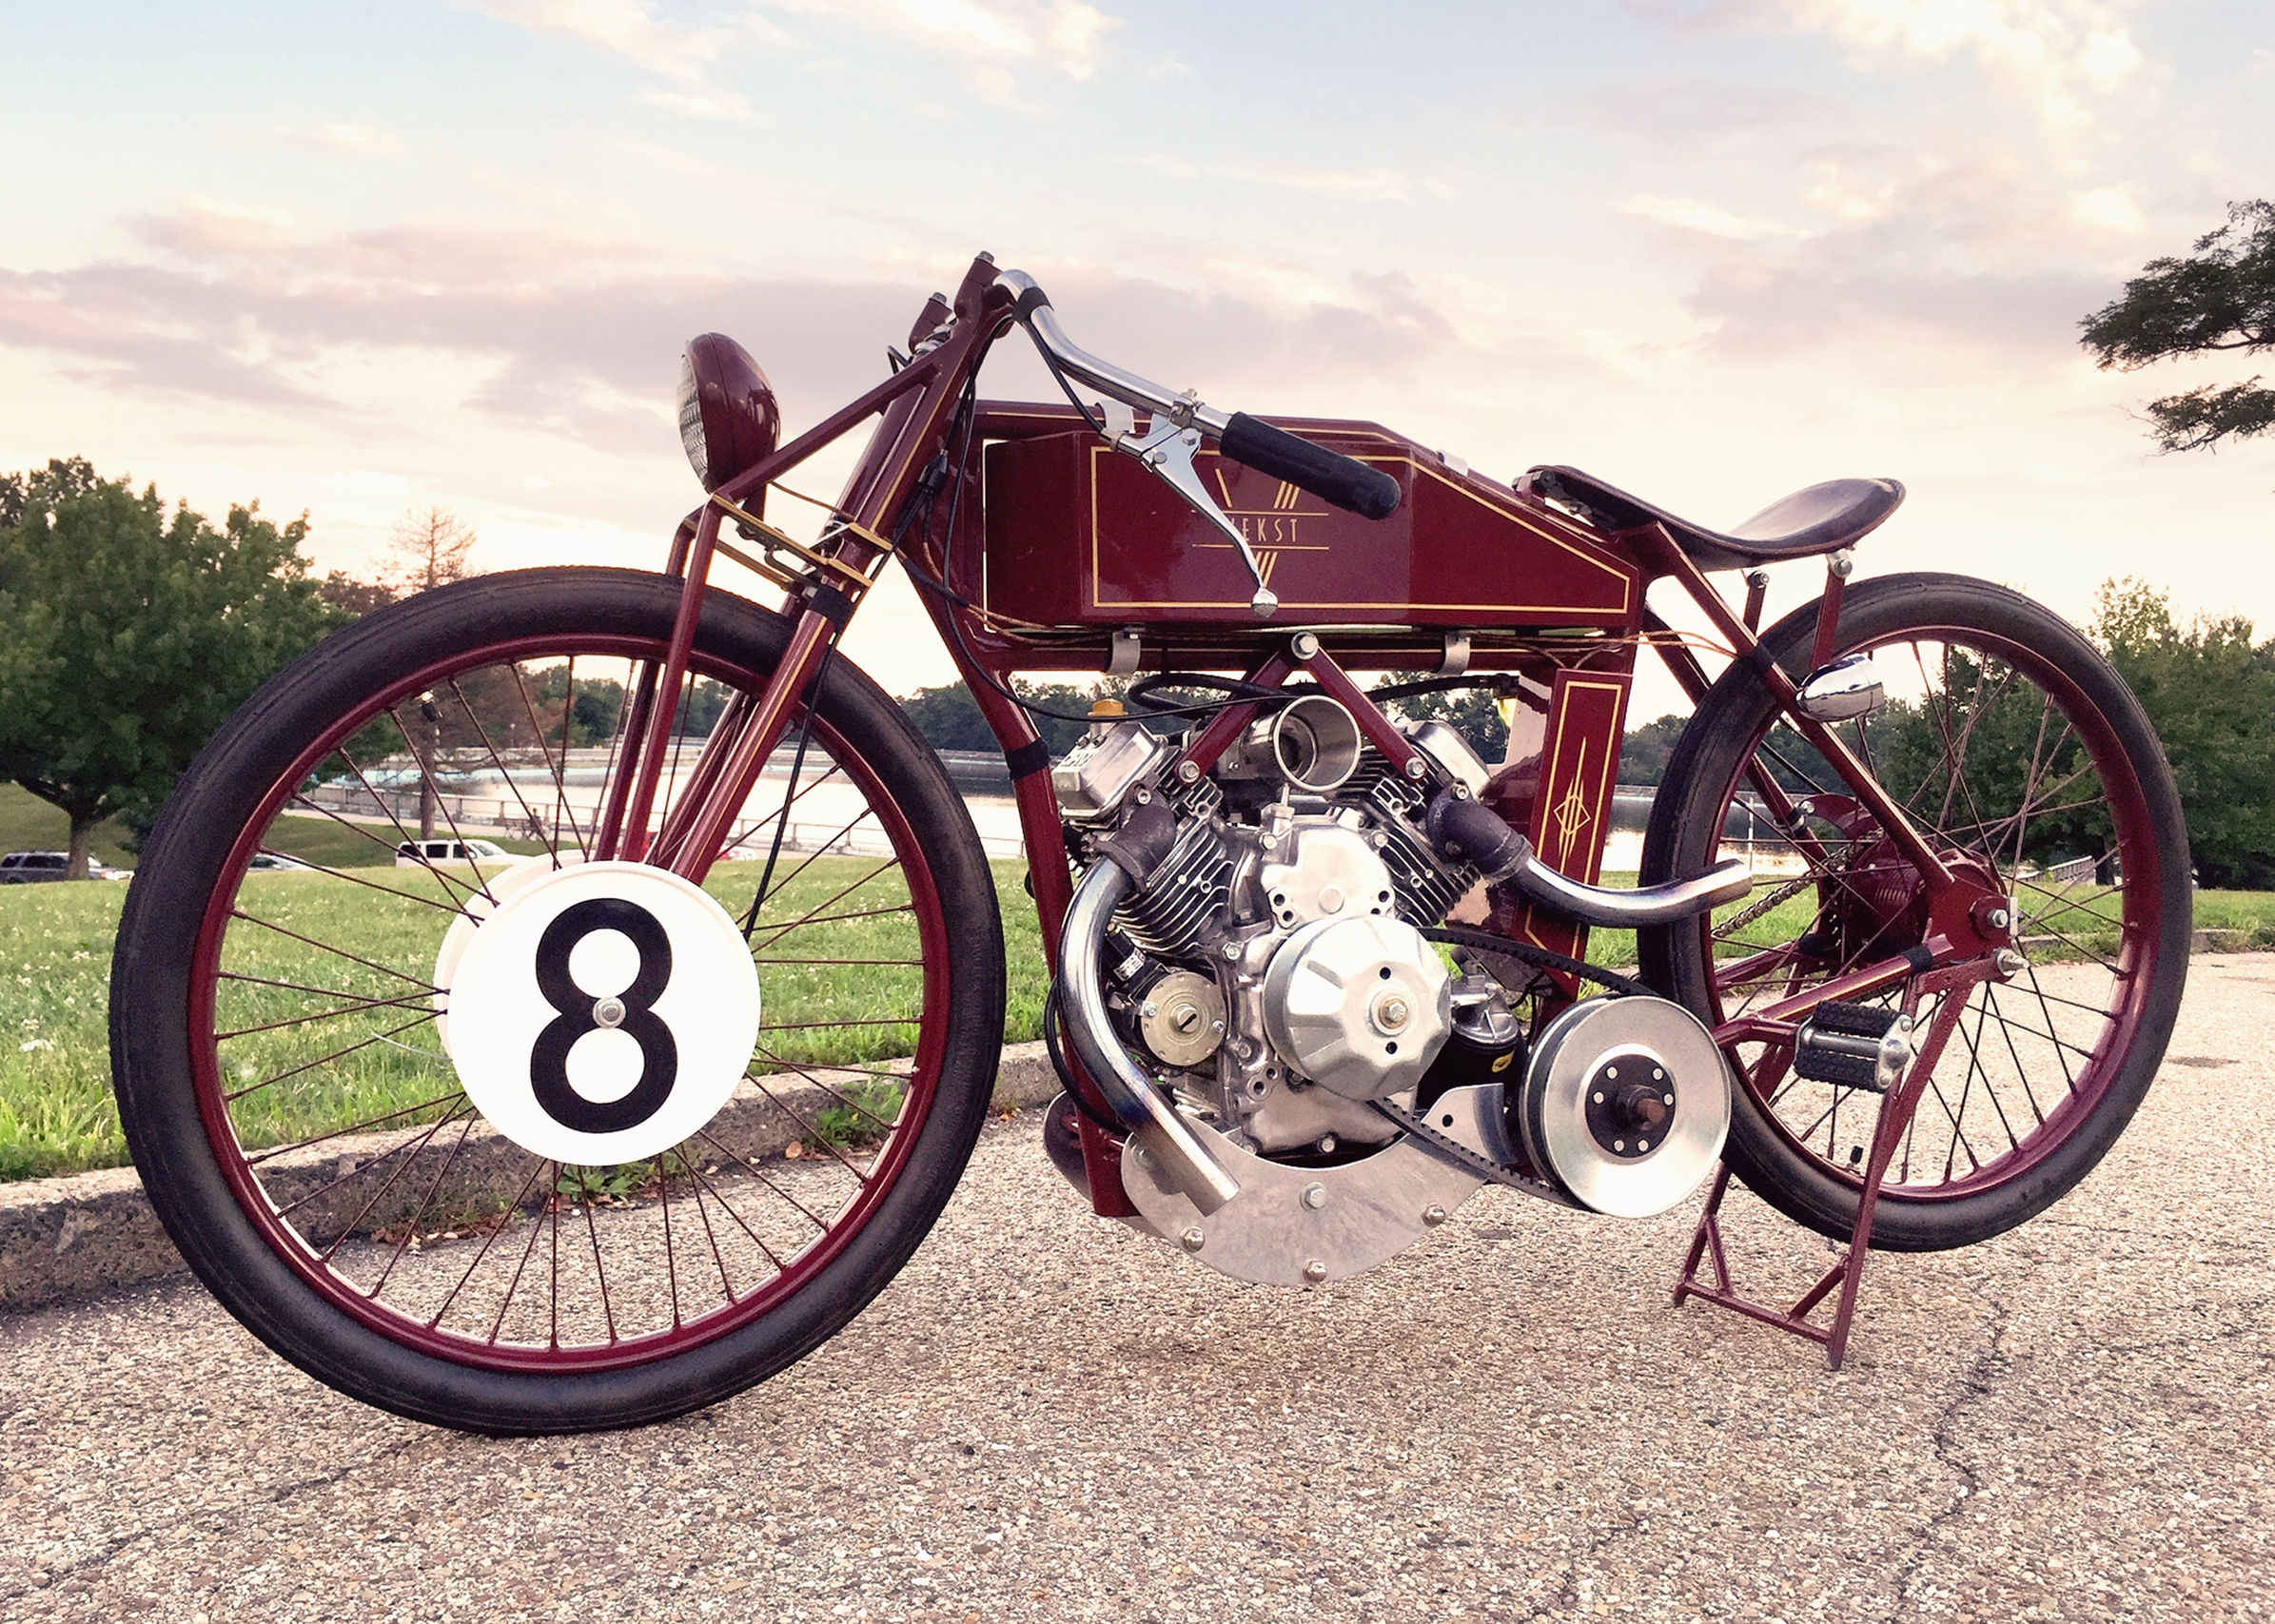 630cc V-TWIN - 1926 board track racer tribute. Powered by a Briggs and Stratton Vanguard with a Comet 40/41 CVT